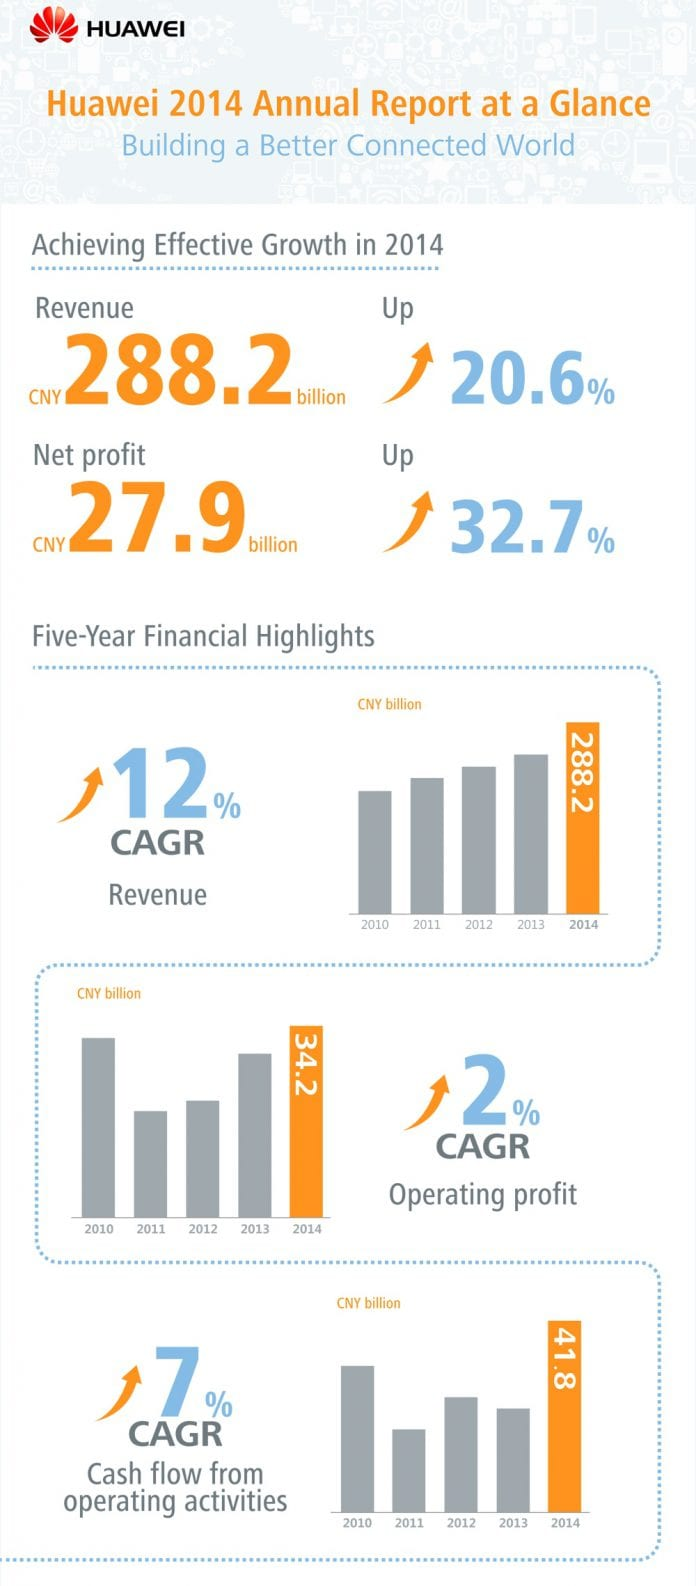 Huawei 2014 Annual Report at a Glance